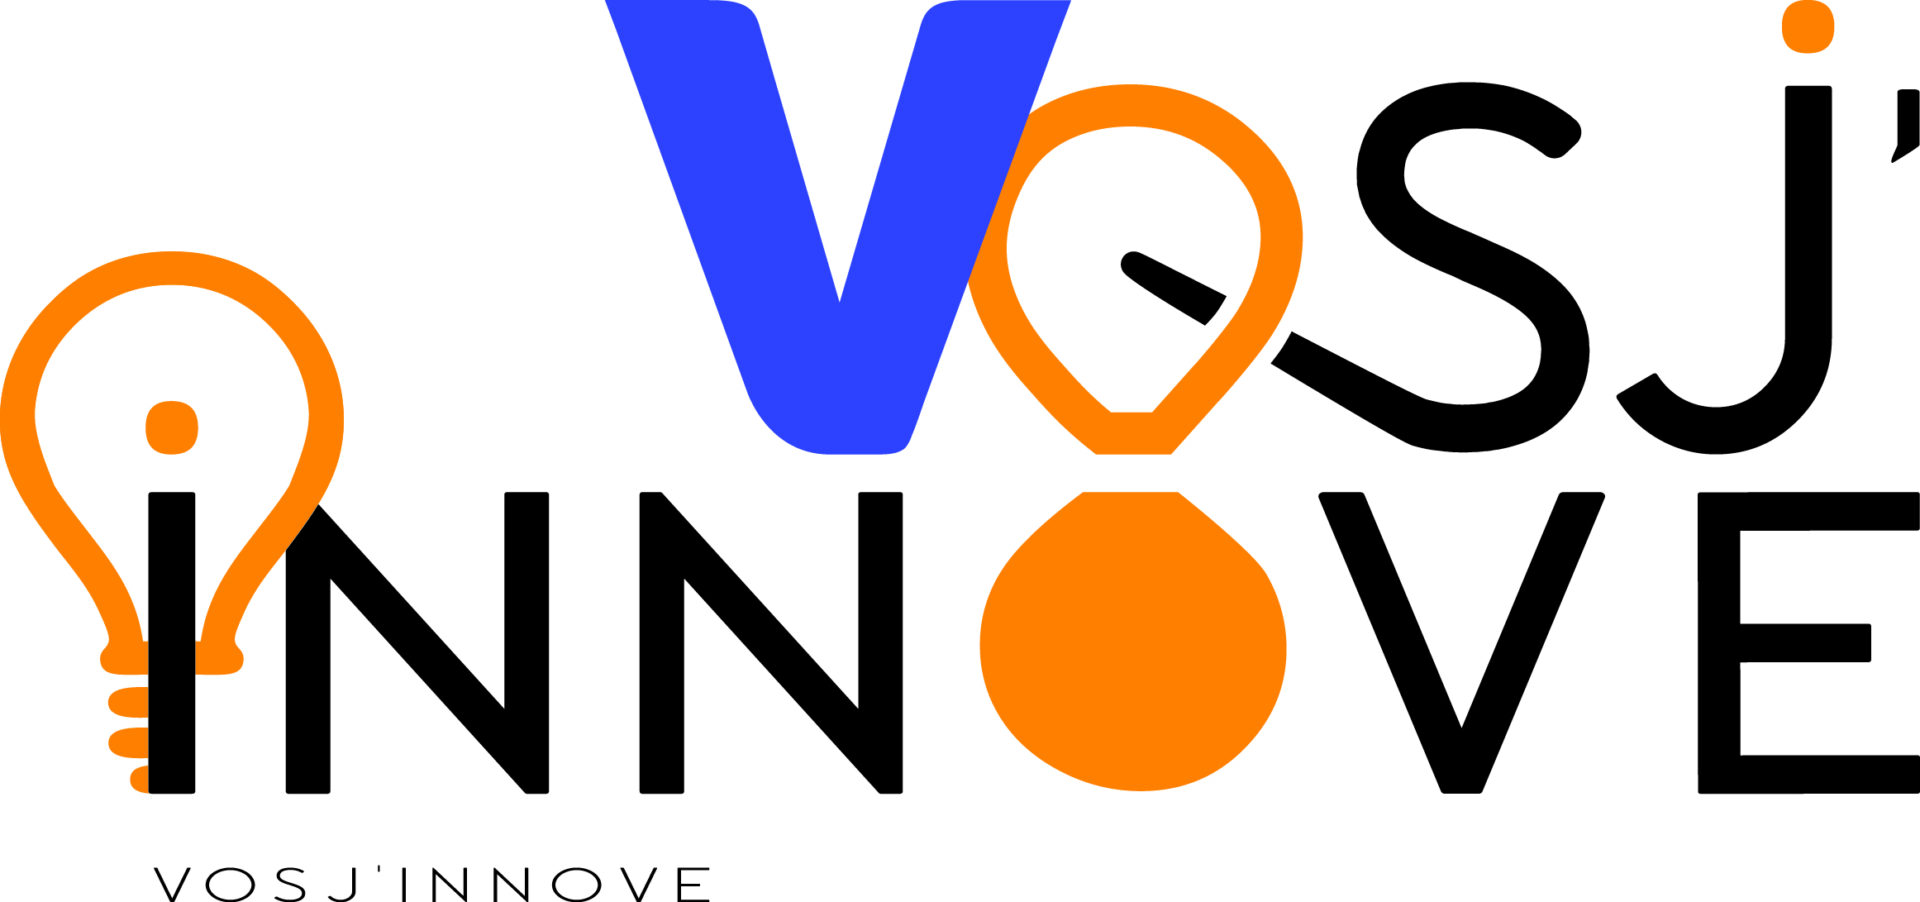 Salon made in france logo vosjinnove for Salon made in france 2017